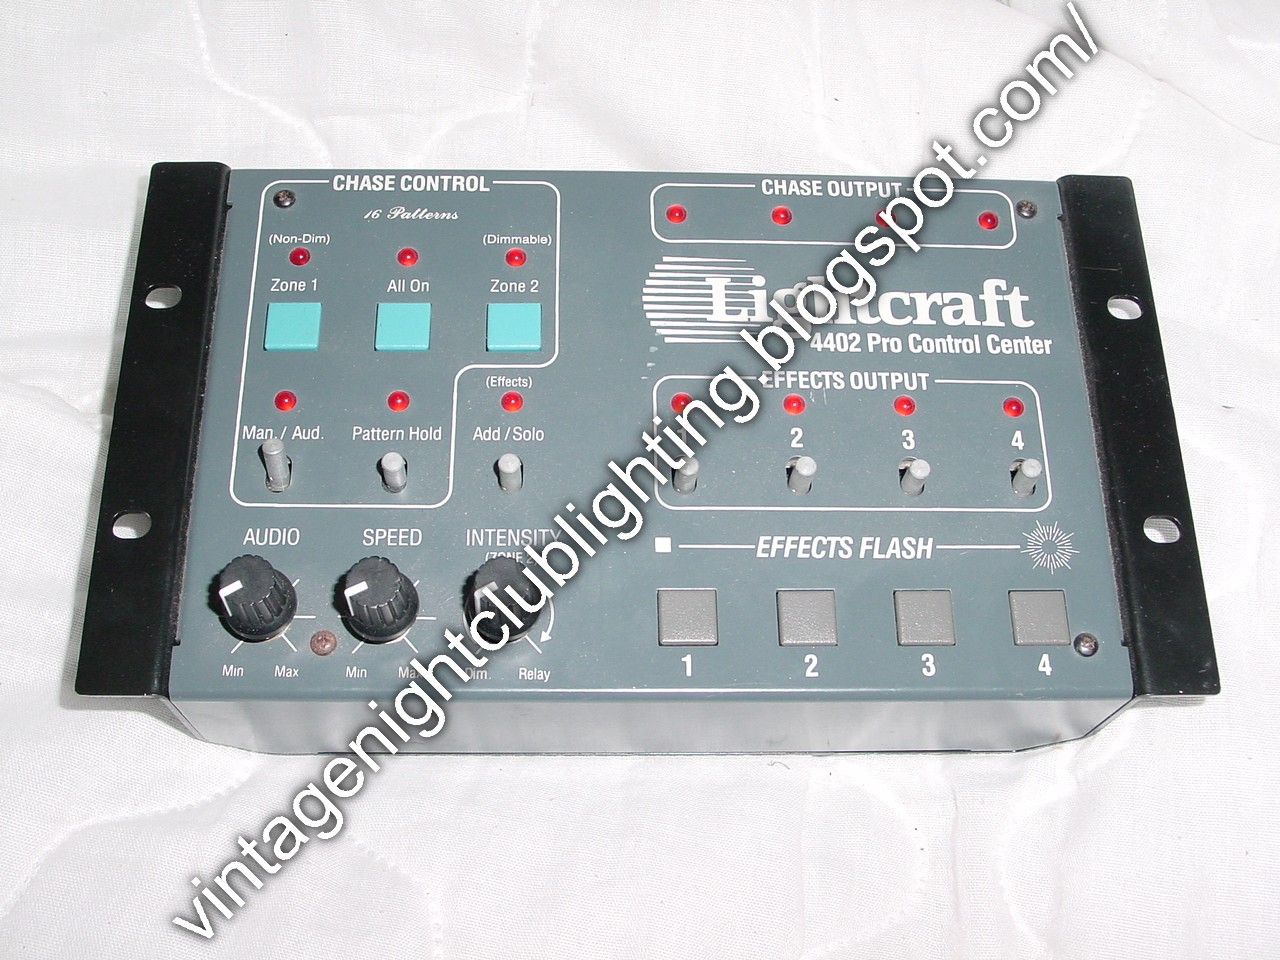 Vintage Night Club Lighting Lightcraft 4402 Pro Control Center Audio Wiring Plans For Nightclub Additional Zone Of Dimming Or Relay And Direct Patching Into The Unit Via A 1 4 Plug On Rear Made In United States